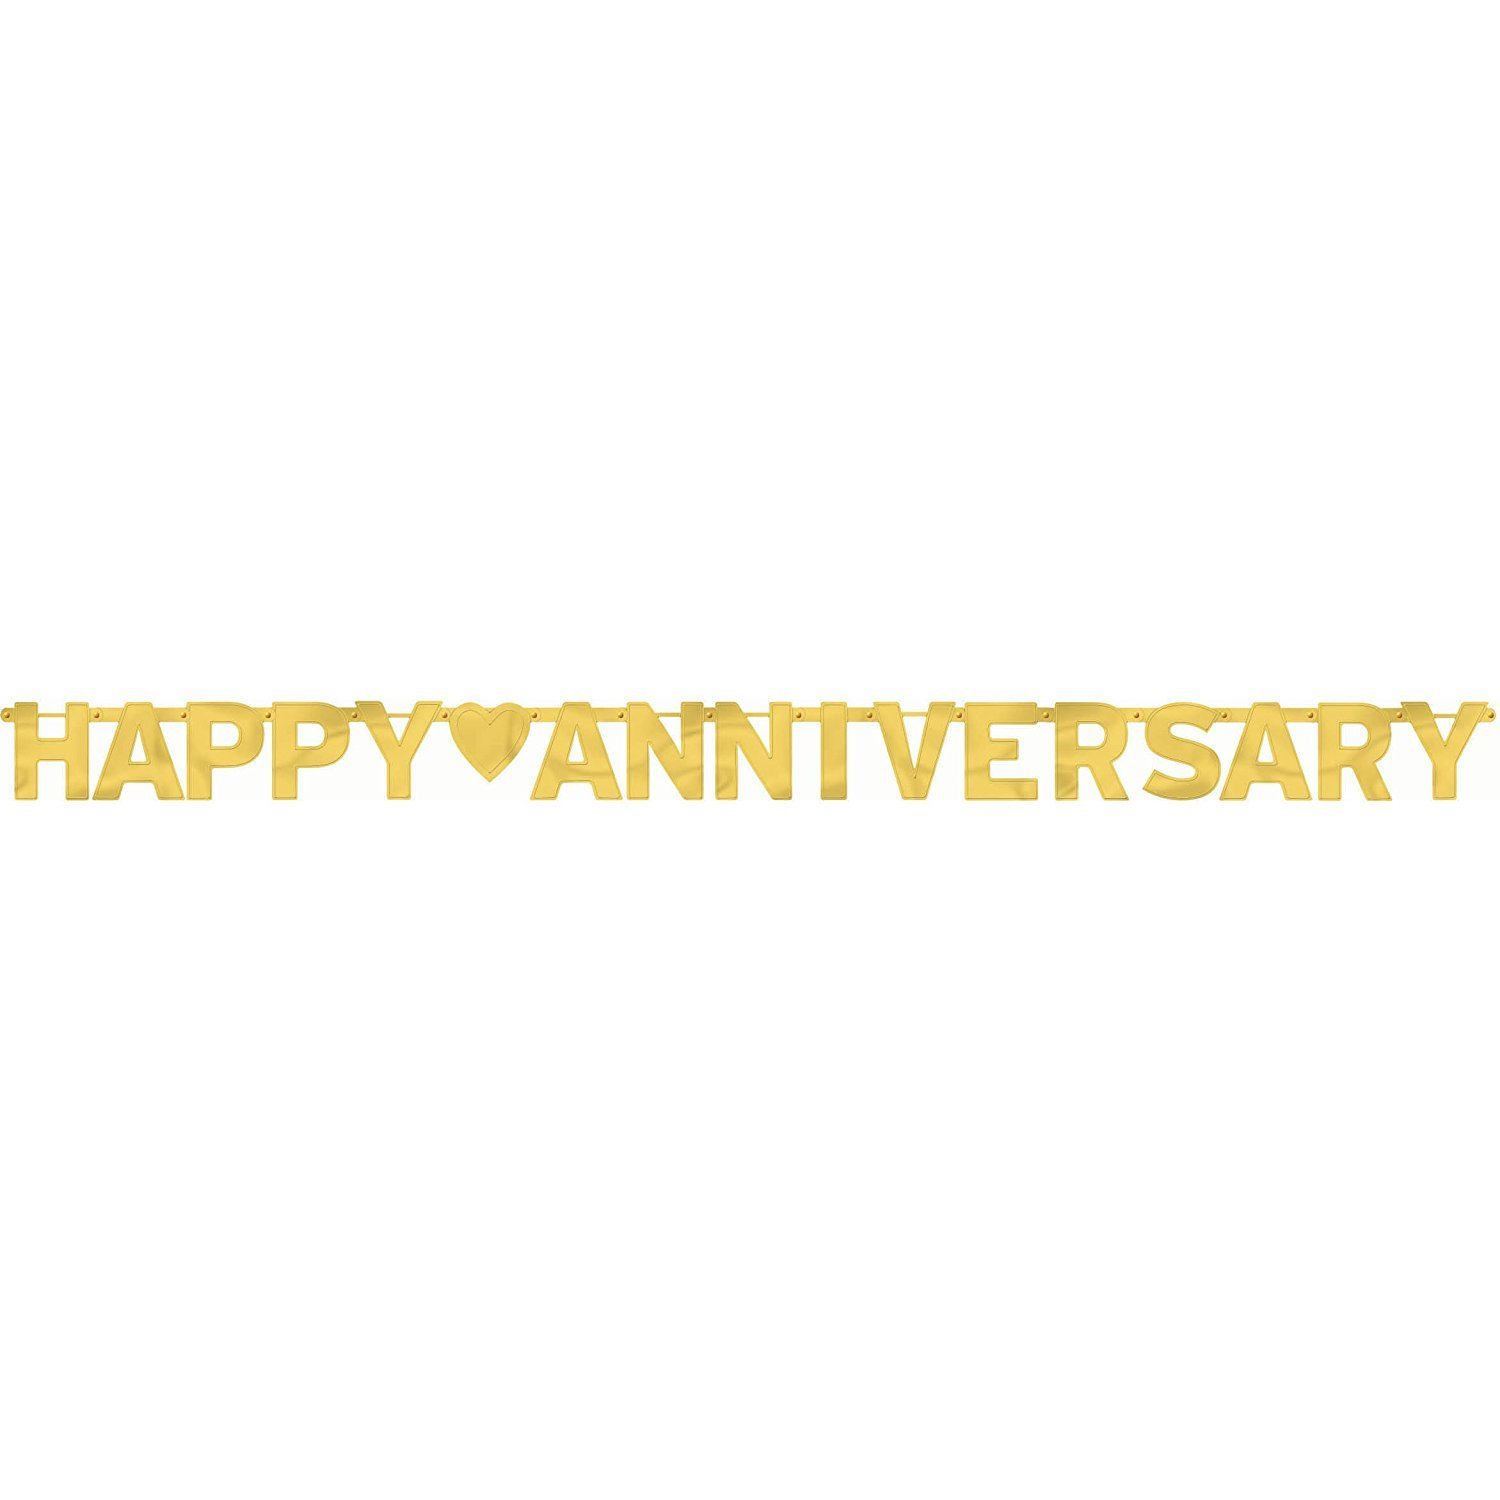 Amscan International Happy Anniversary Banner Large Letter Gold 122592.19